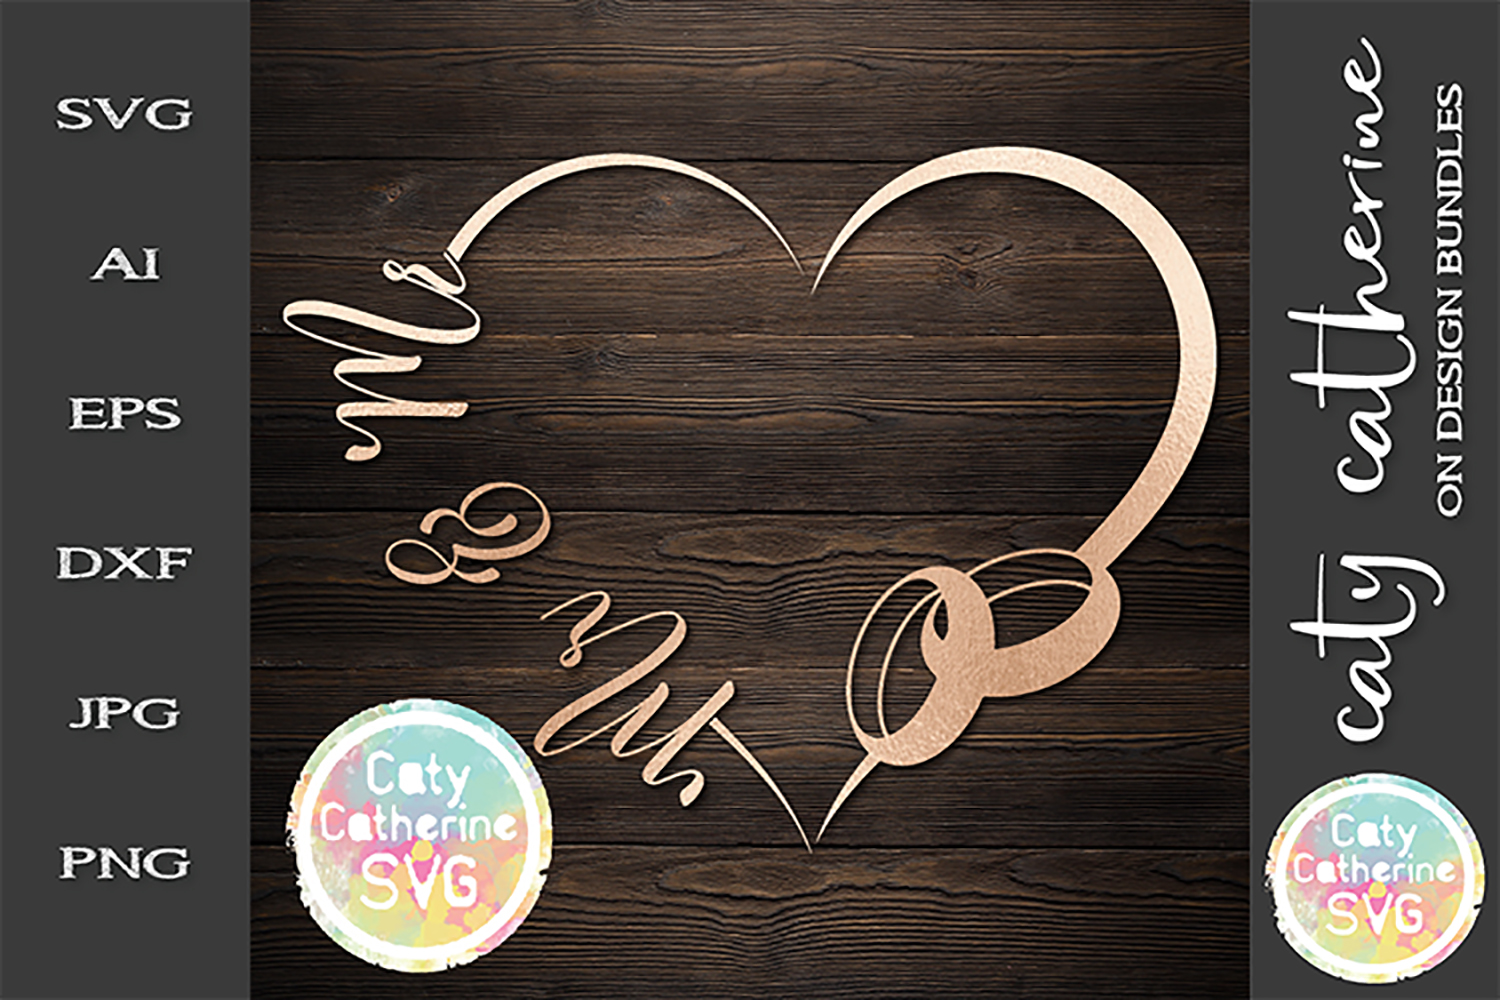 Wedding Love Heart Frame With Rings Bundle SVG Cut File example image 3